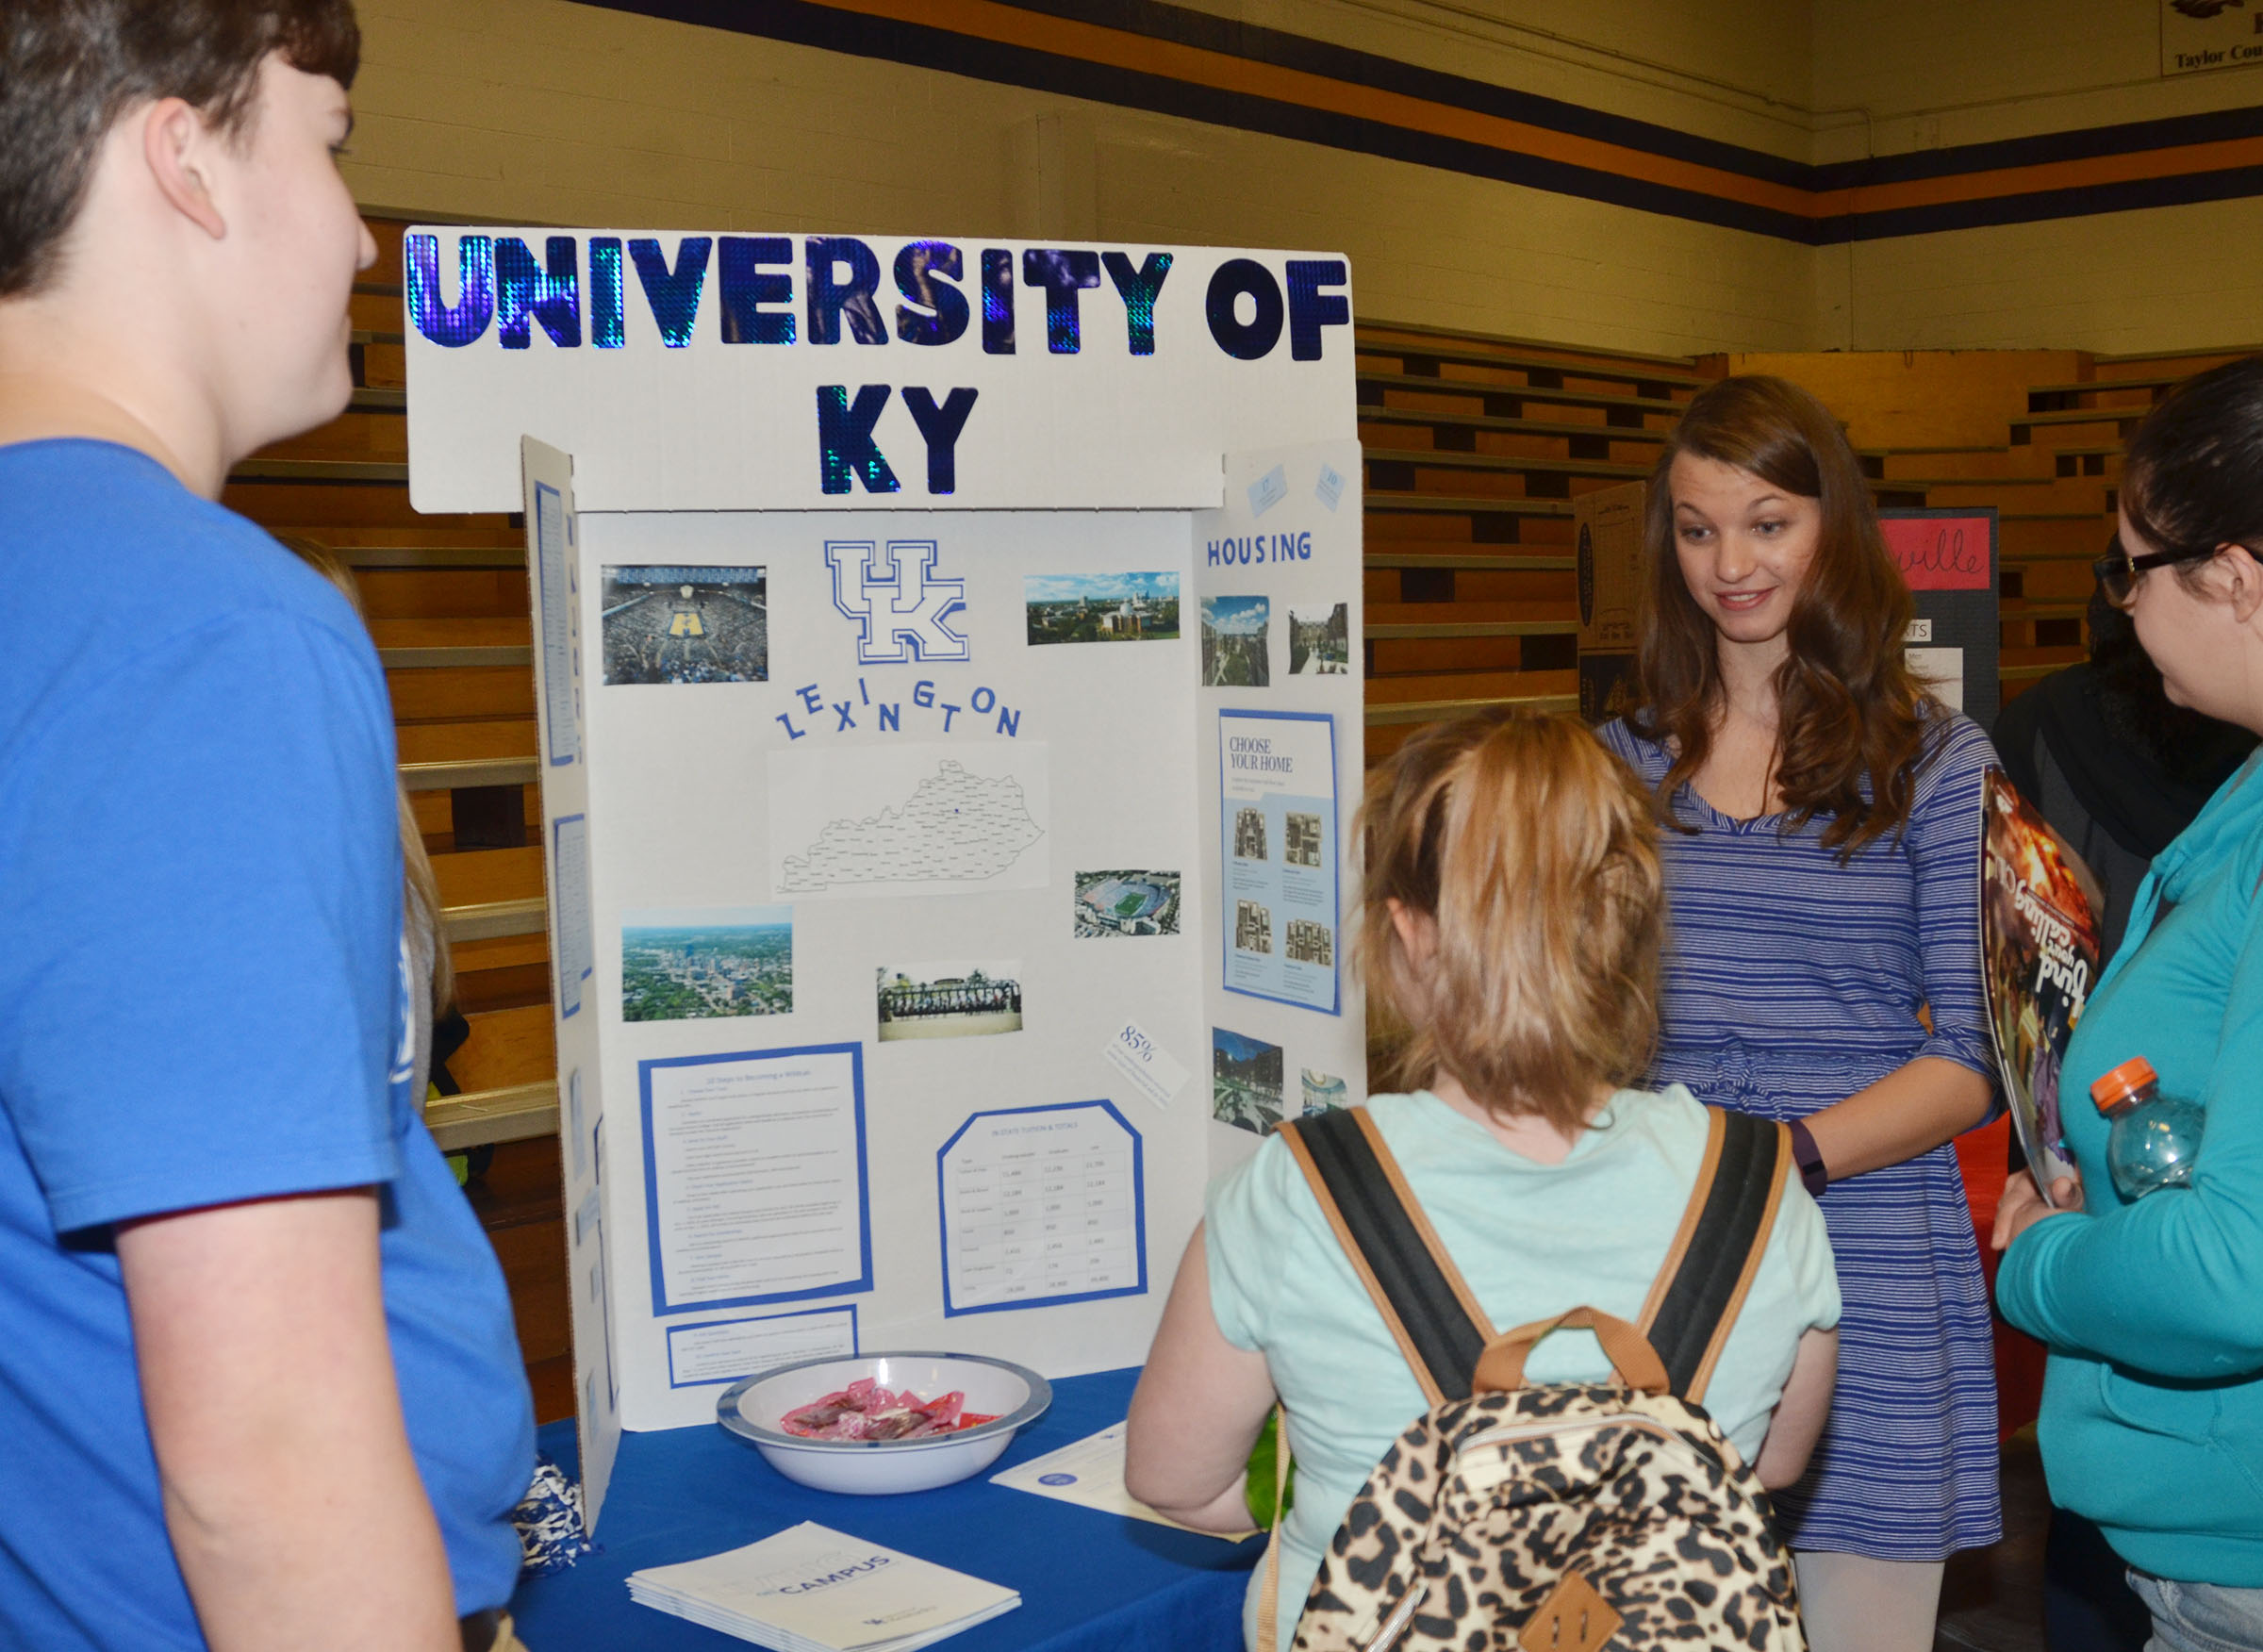 CHS seniors Zack Settle, at left, and Caylie Blair present information about University of Kentucky.